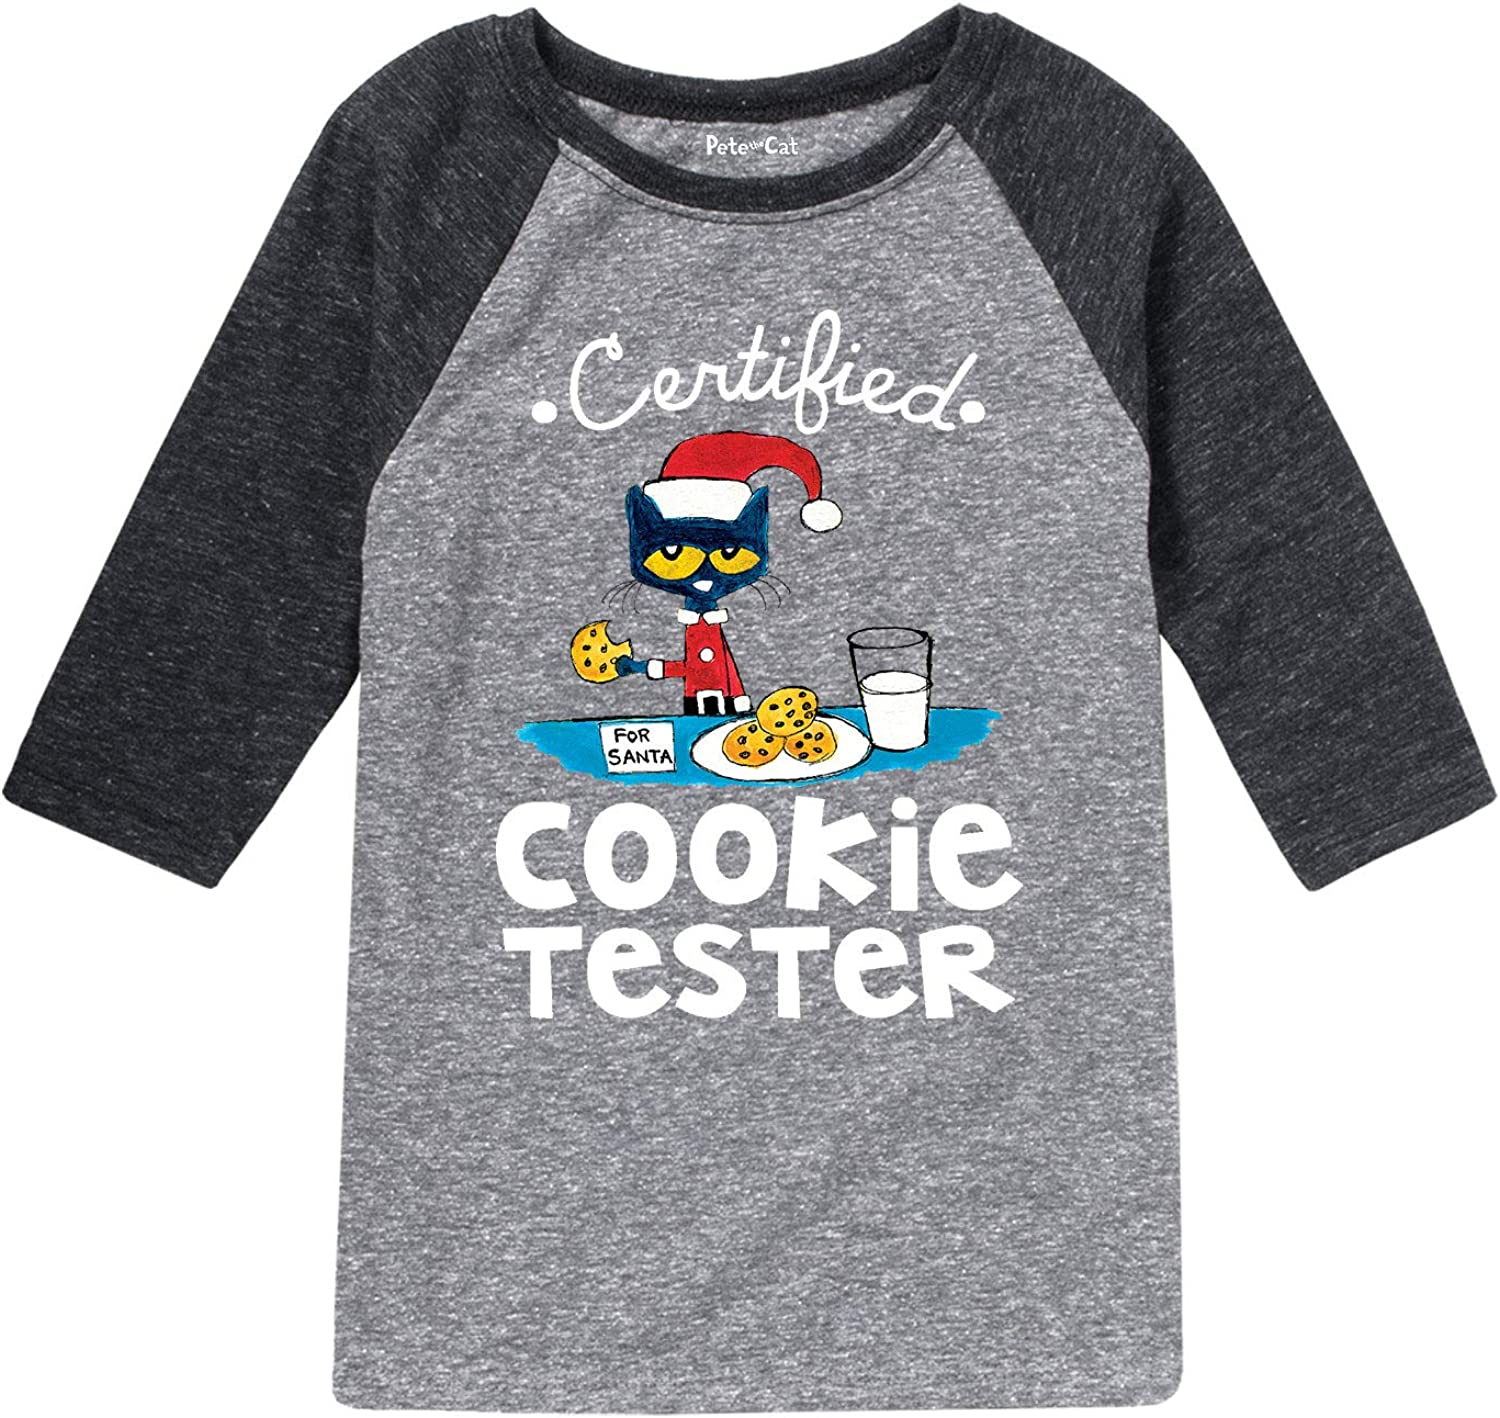 Pete the Cat Certified Cookie Tester Toddler Long Sleeve Tee